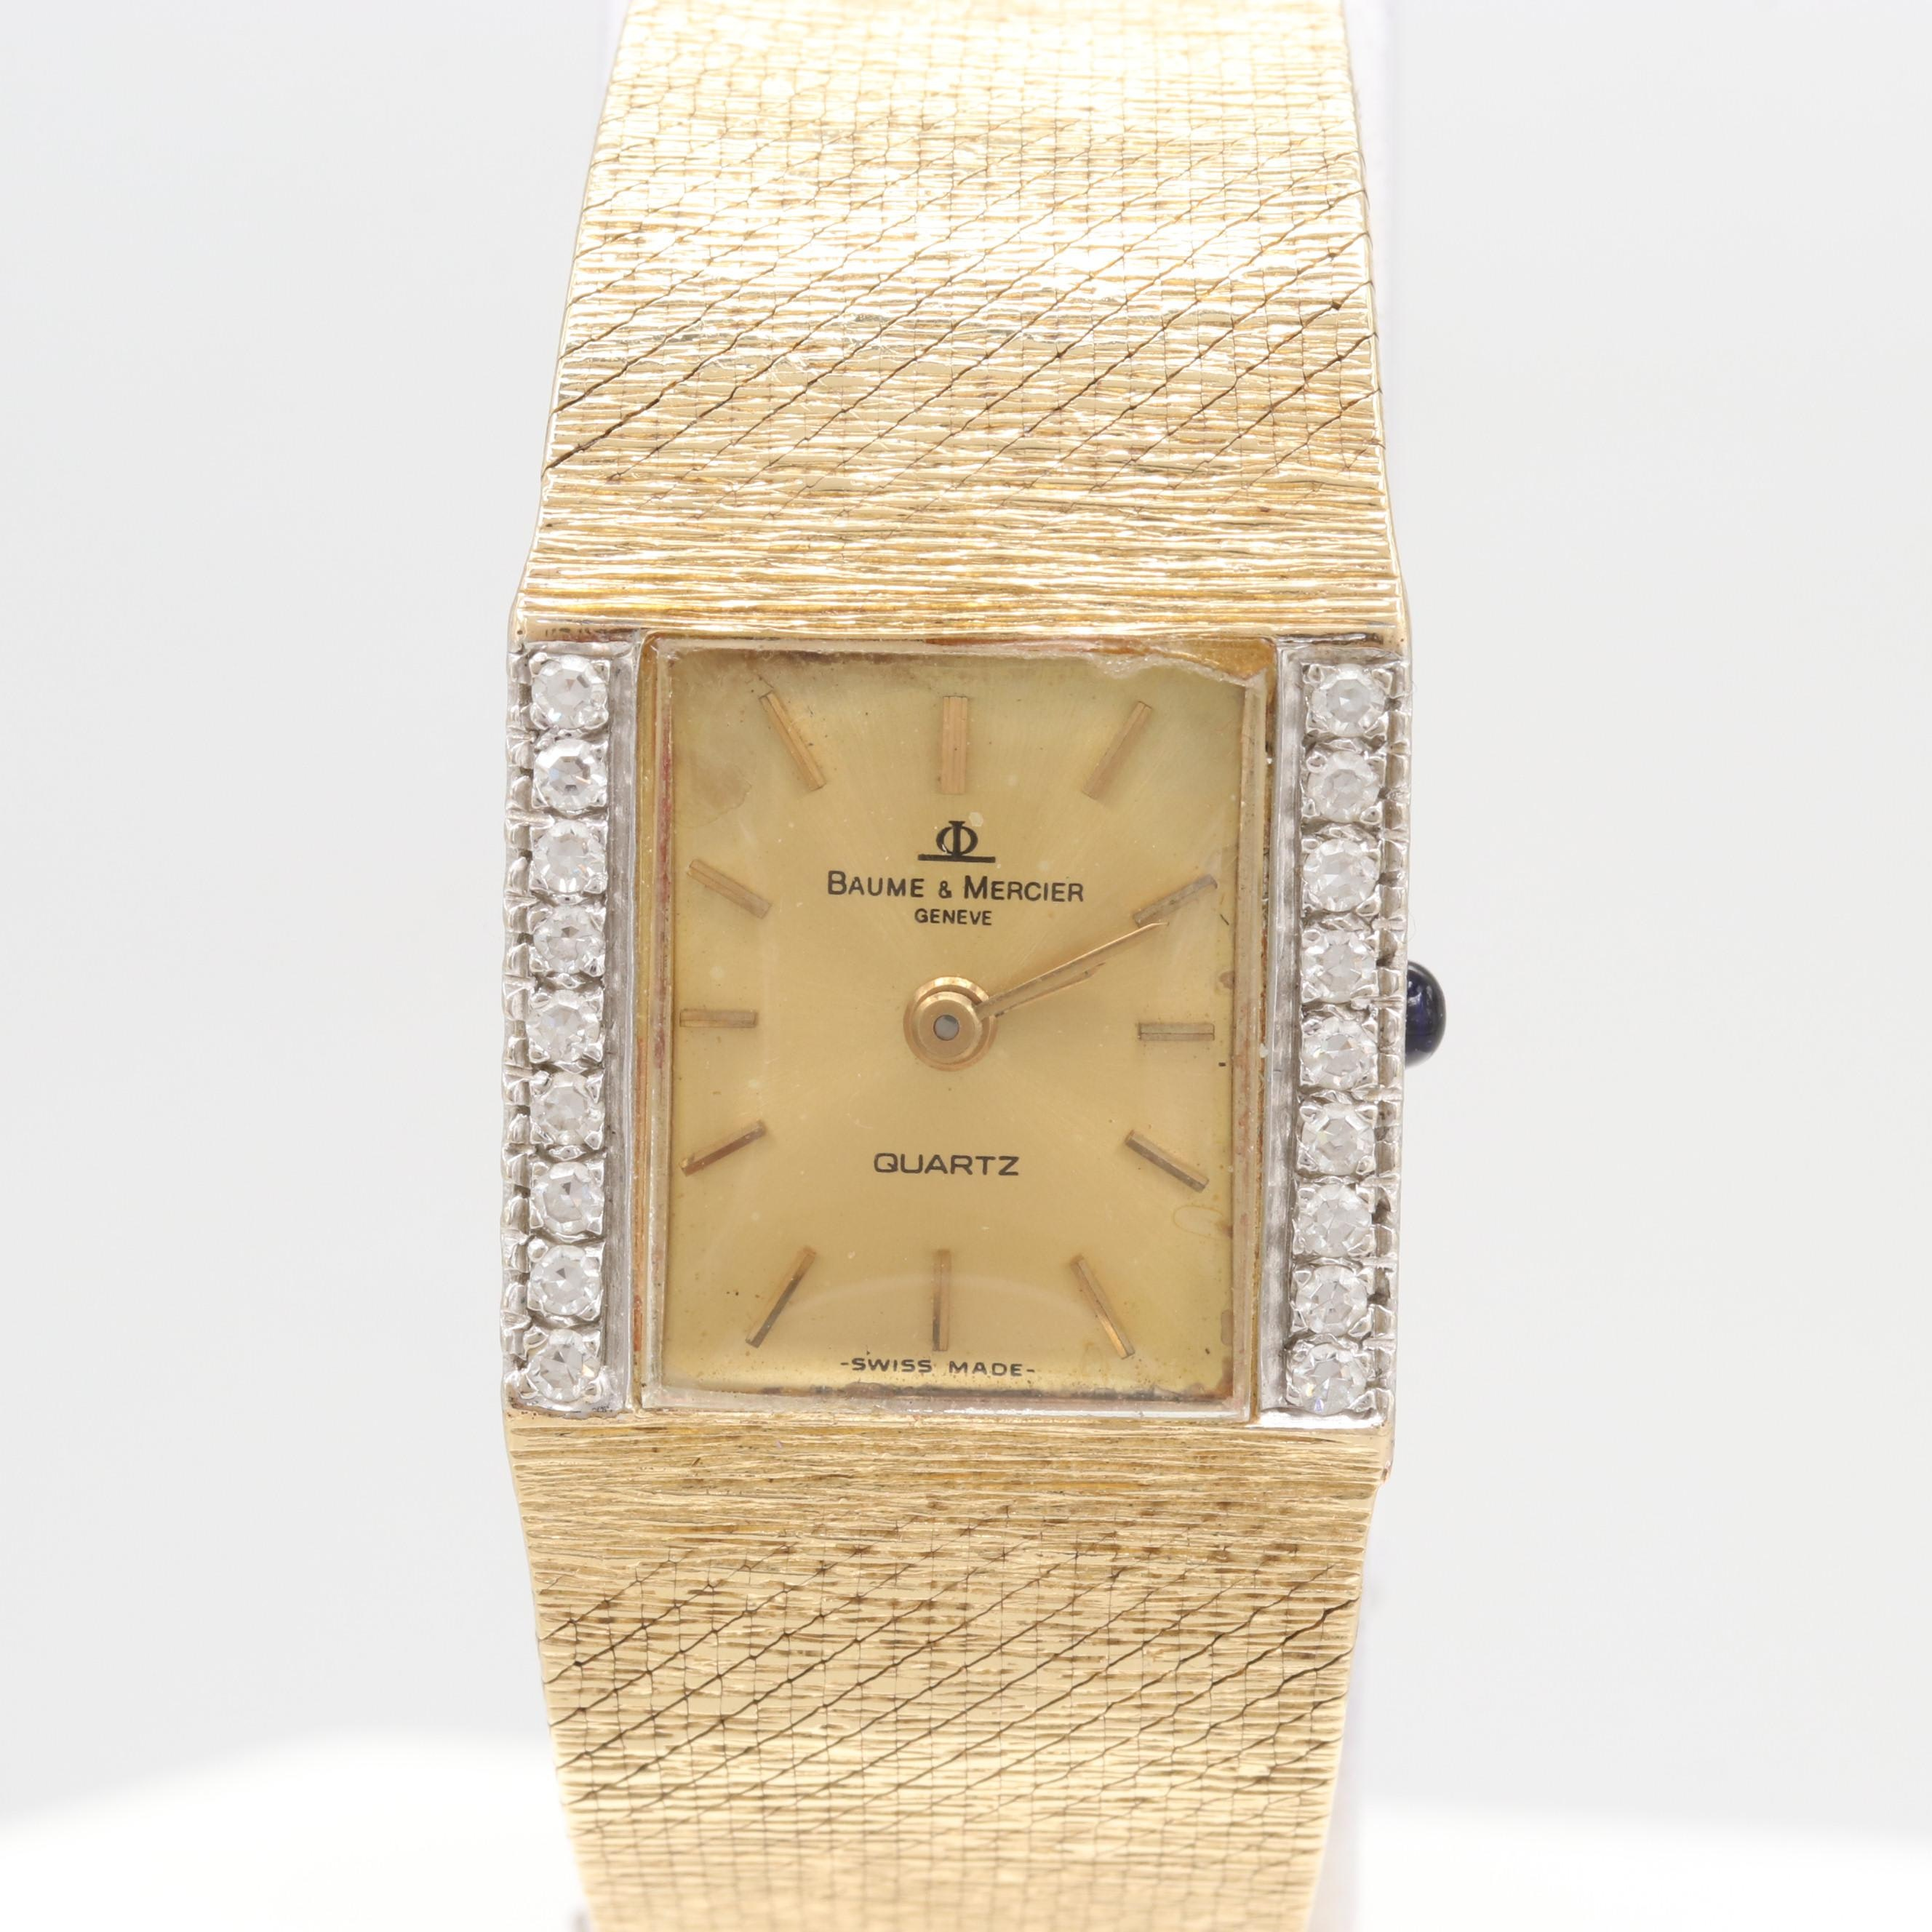 Baume & Mercier 14K Yellow Gold and Diamond Bezel Quartz Wristwatch